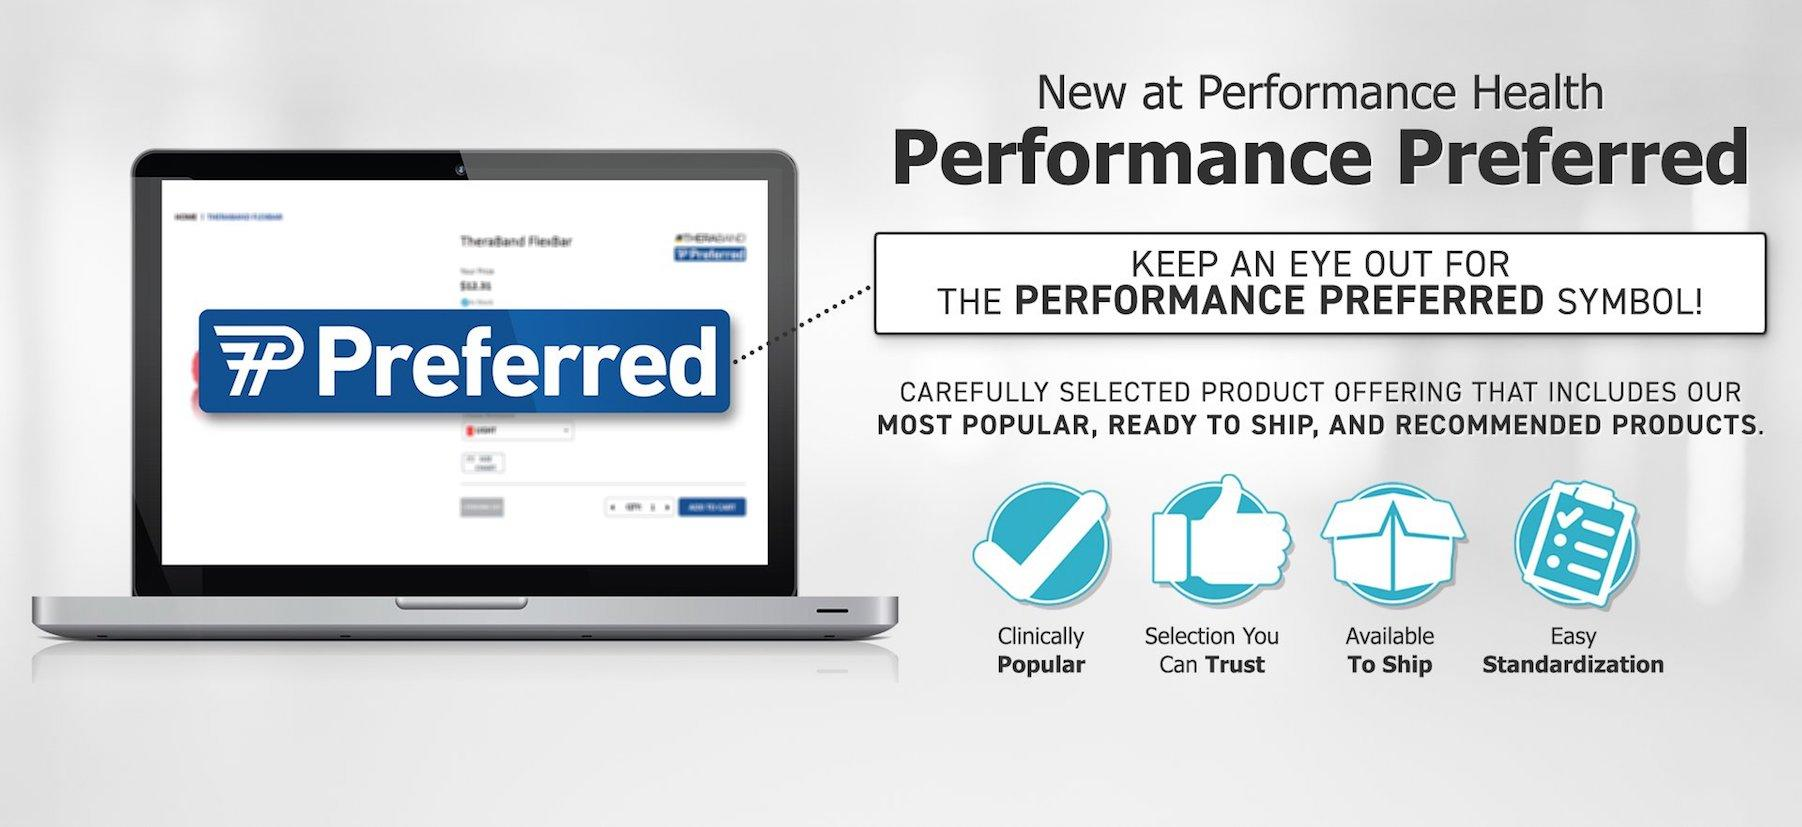 Performance Preferred Products At Performance Health